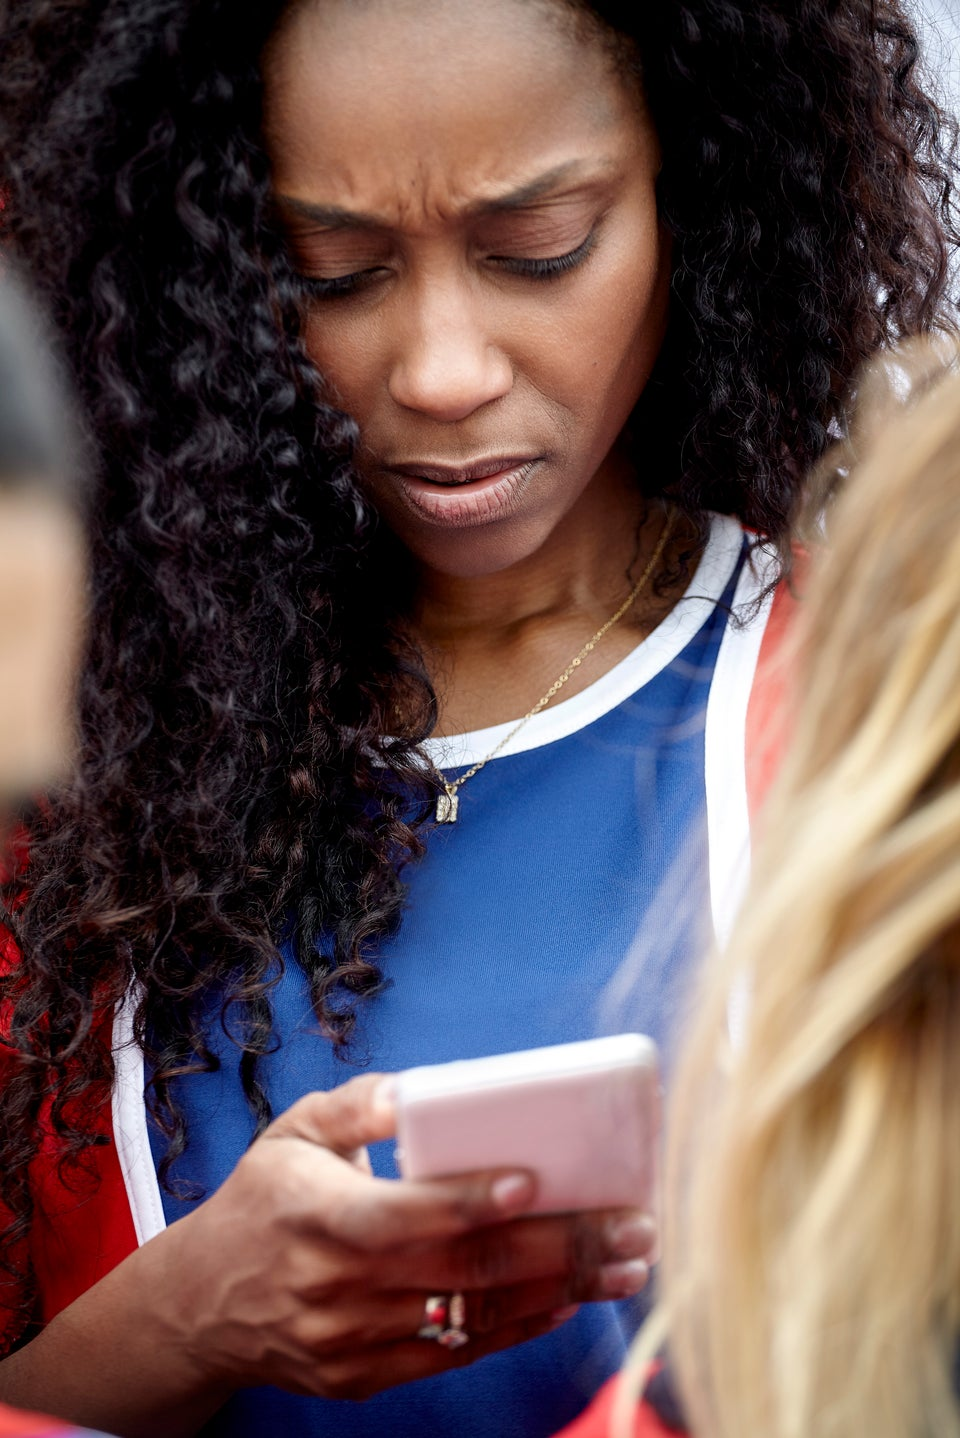 Where Did They Go? How To Deal When You've Been Left 'On Read'